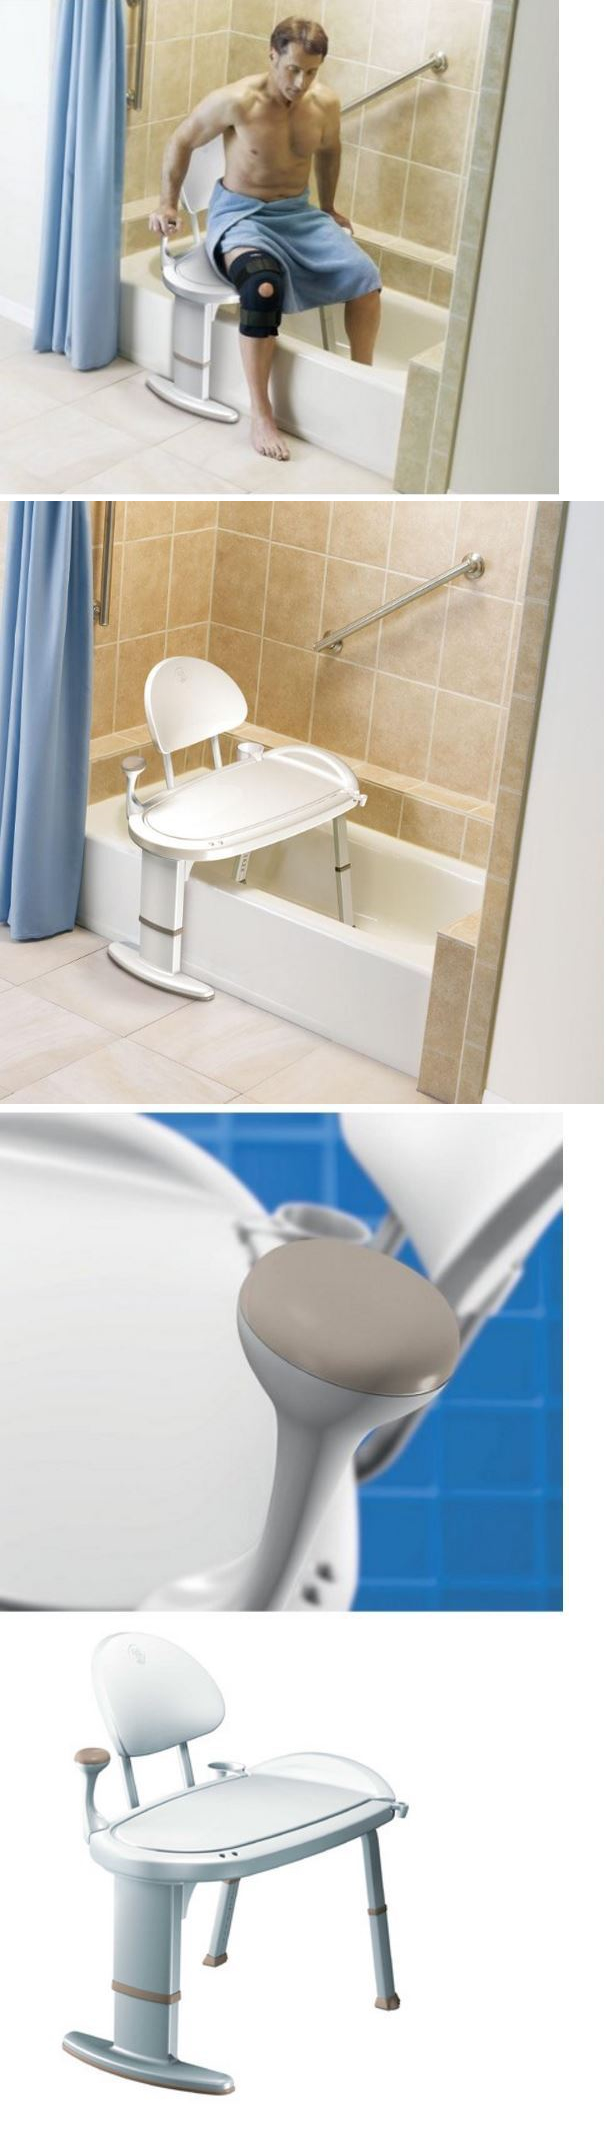 Shower and Bath Seats: Bath Bench Or Shower Chair With Back Tub ...